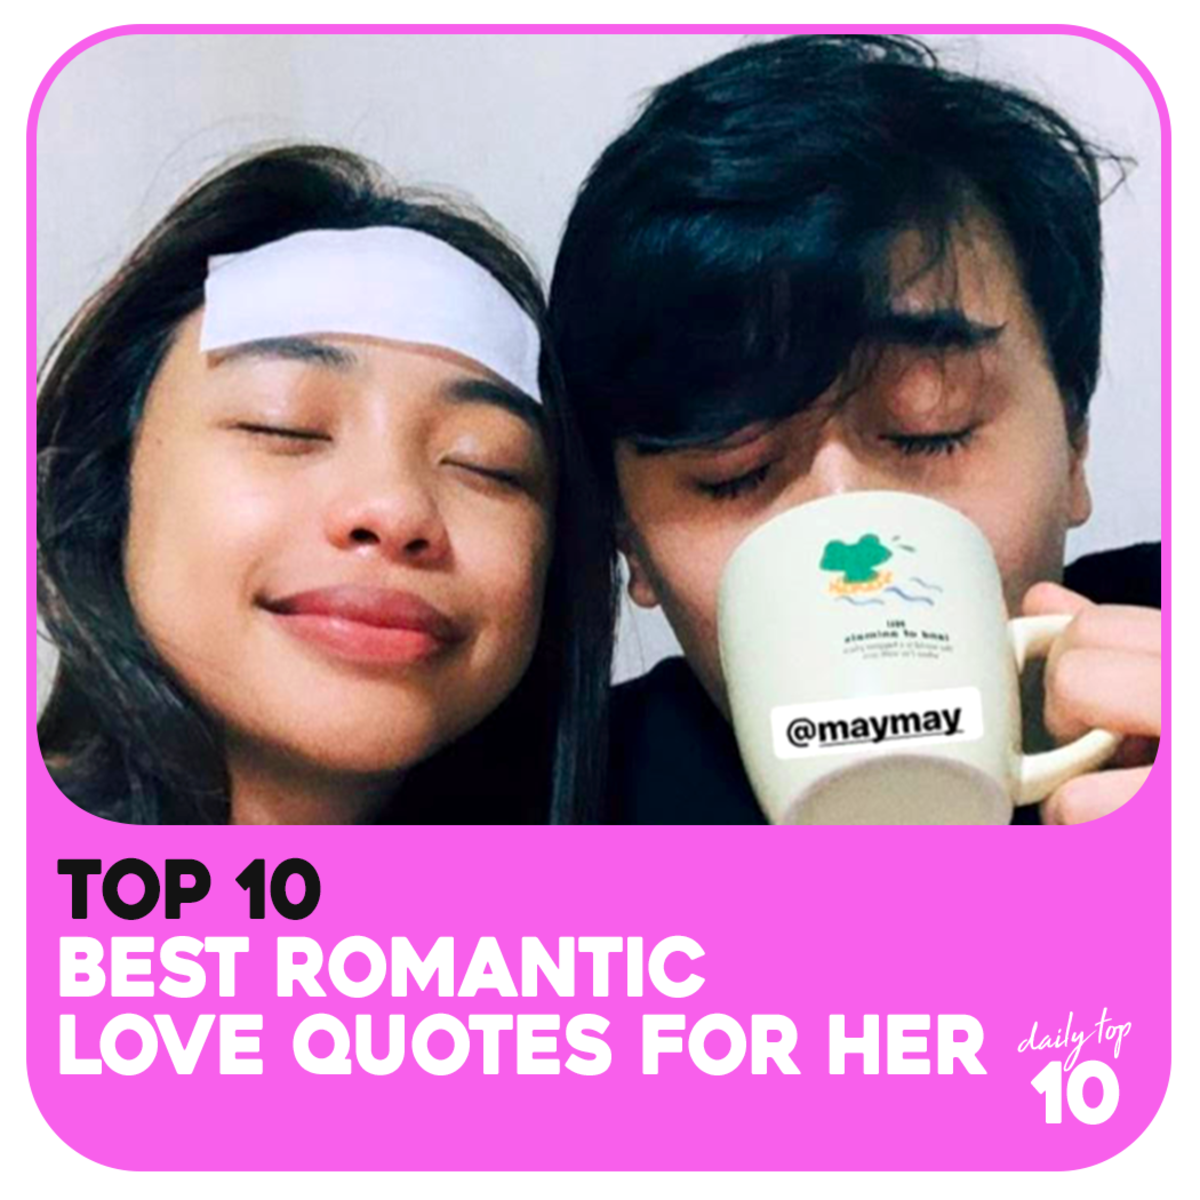 Top 10 Best Romantic Love Quotes for Her Featuring MayWard - Maymay Entrata & Edward Barber Photos